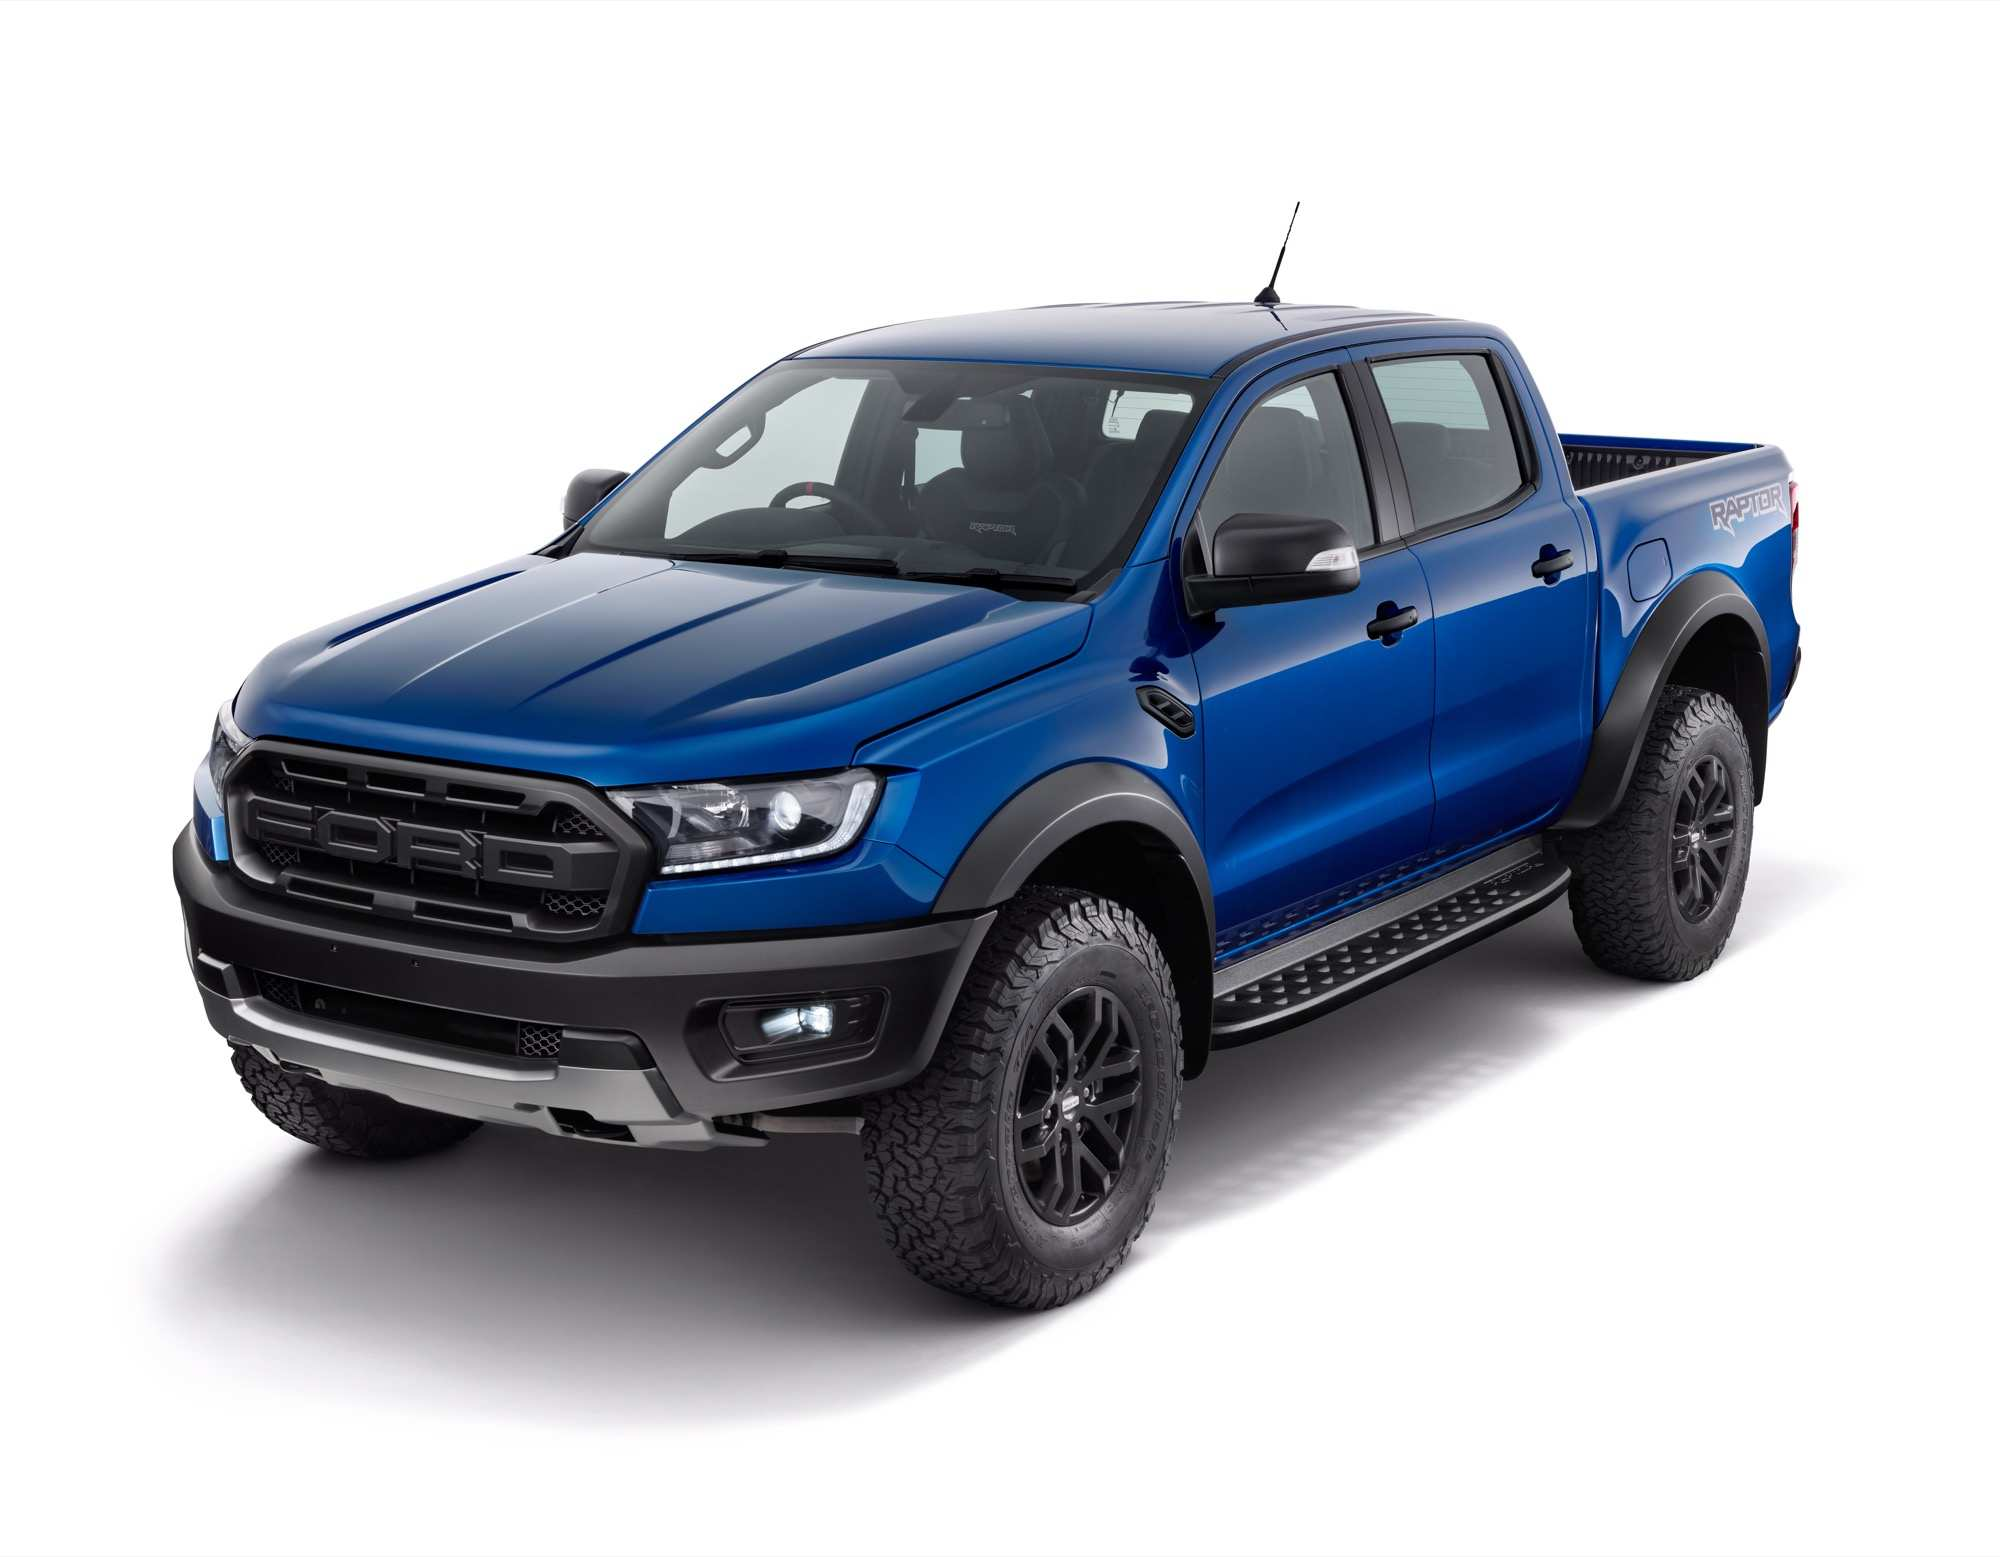 84 Great 2019 Ford Bronco Gas Mileage Price for 2019 Ford Bronco Gas Mileage